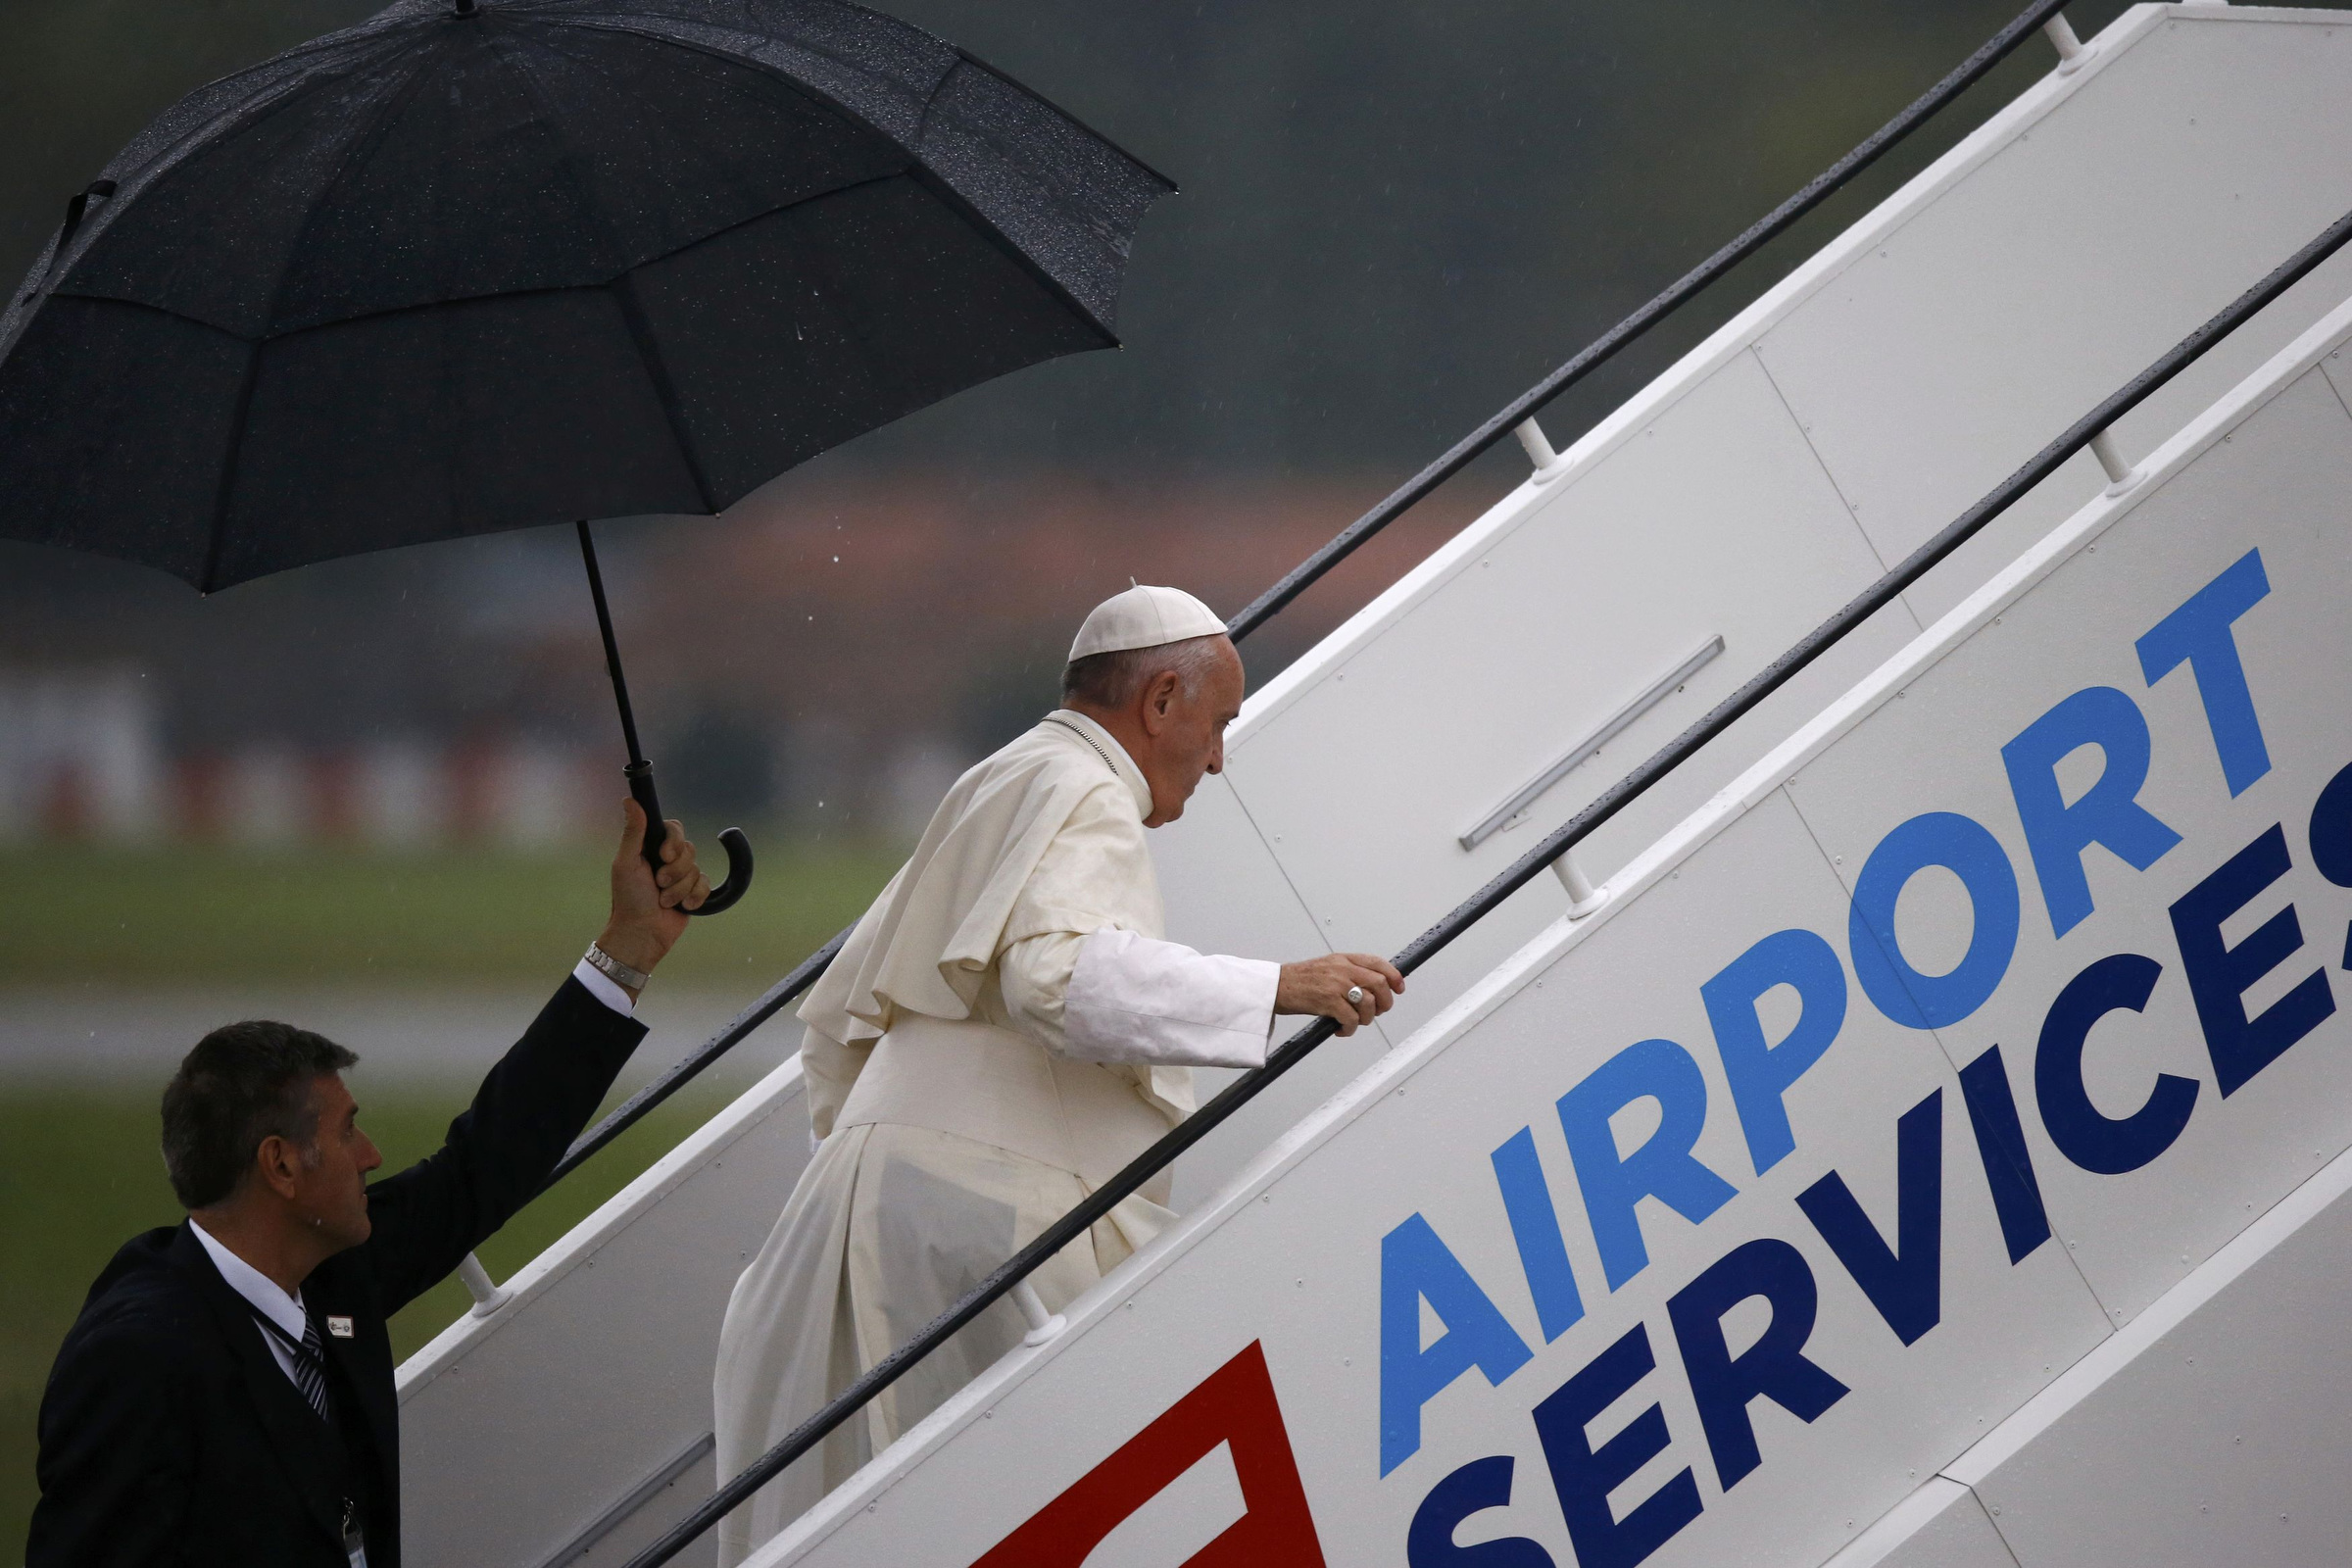 Pope bids farewell to Krakow